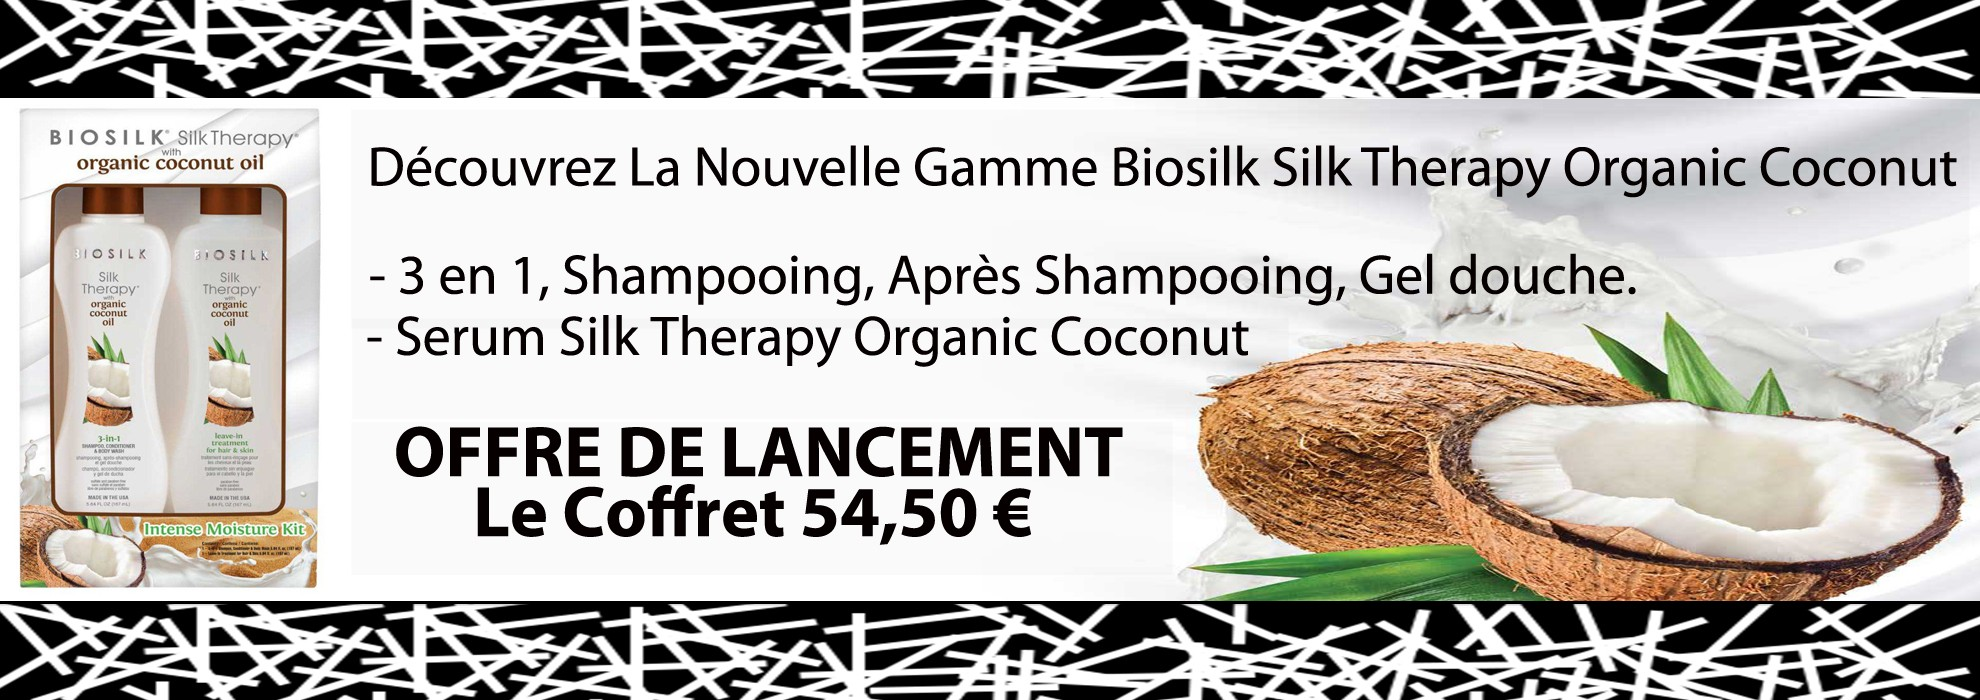 Biosilk Silk Therapy Cure soyeuse Organic Coconut Oil